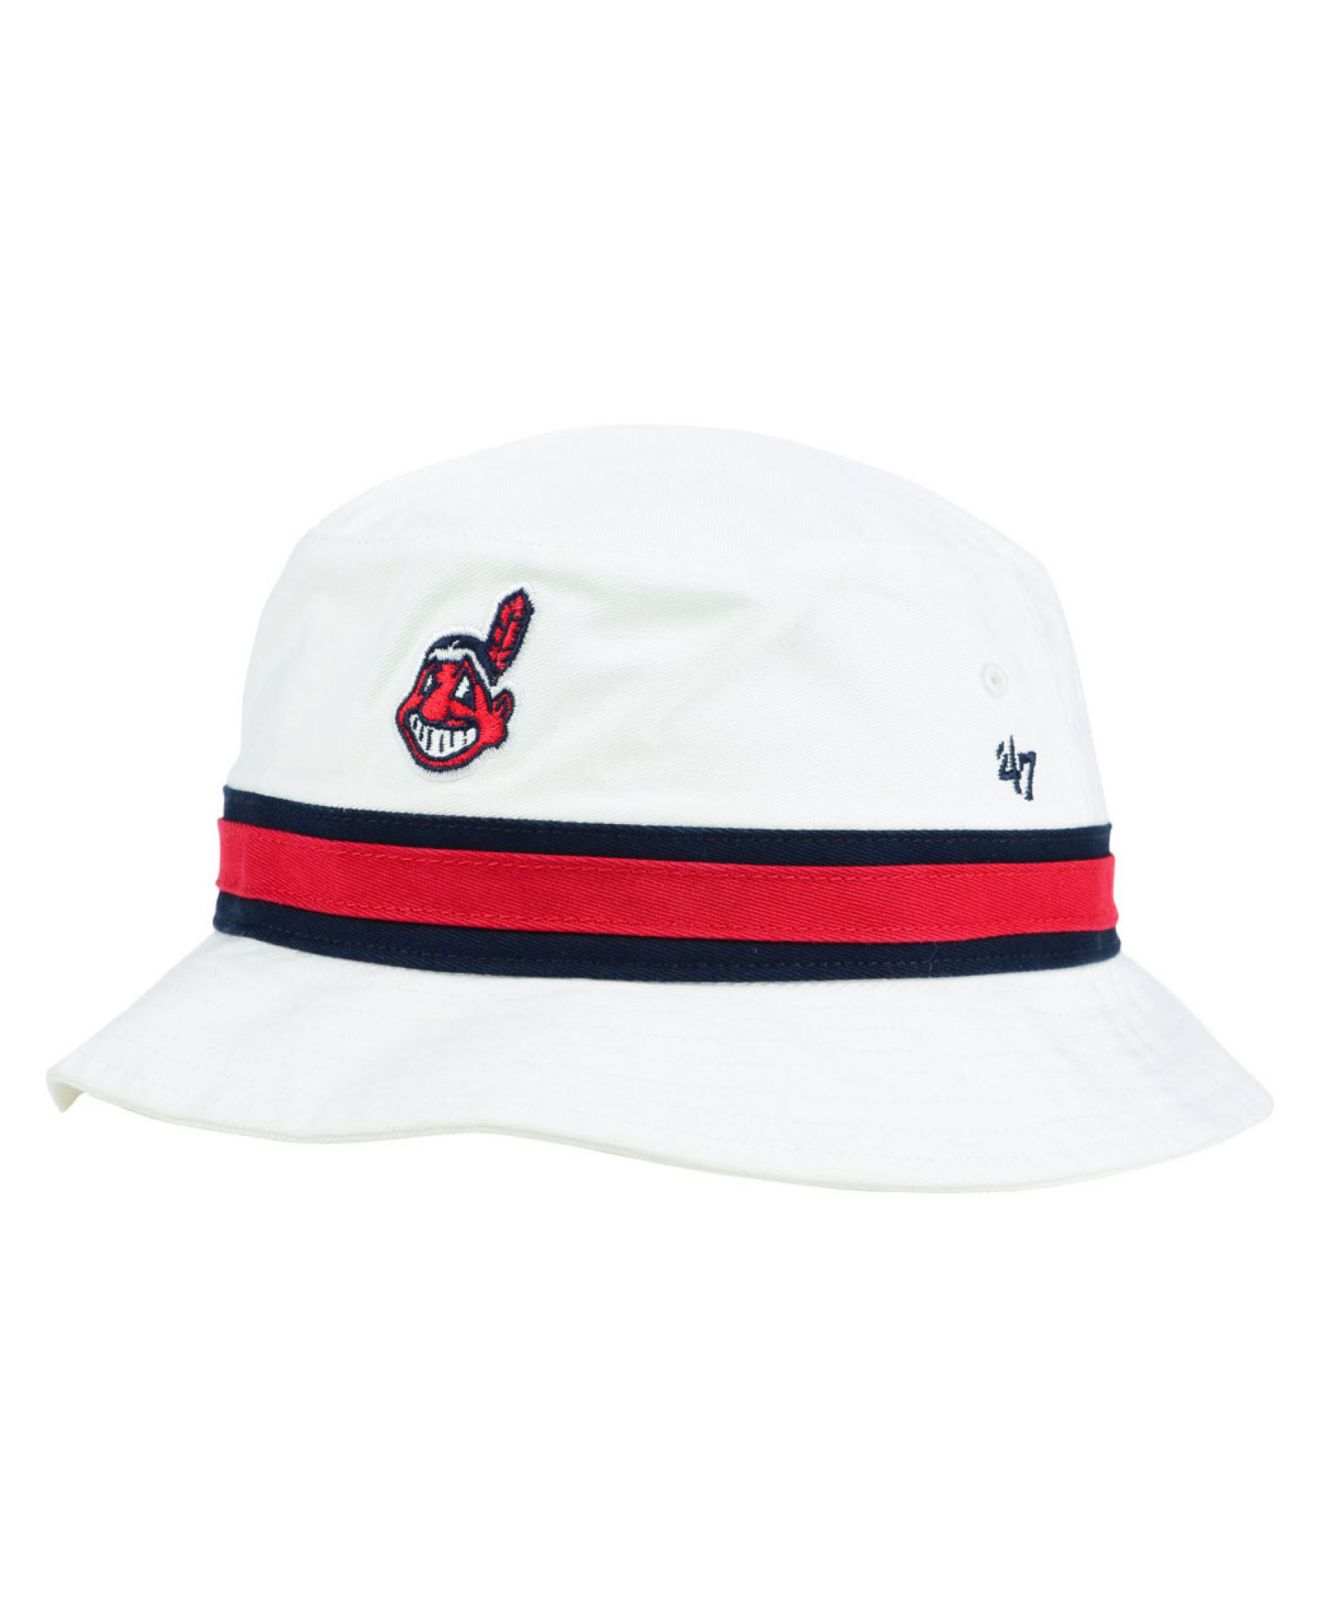 Lyst - 47 Brand Cleveland Indians Striped Bucket Hat in White 52a0cb00c28